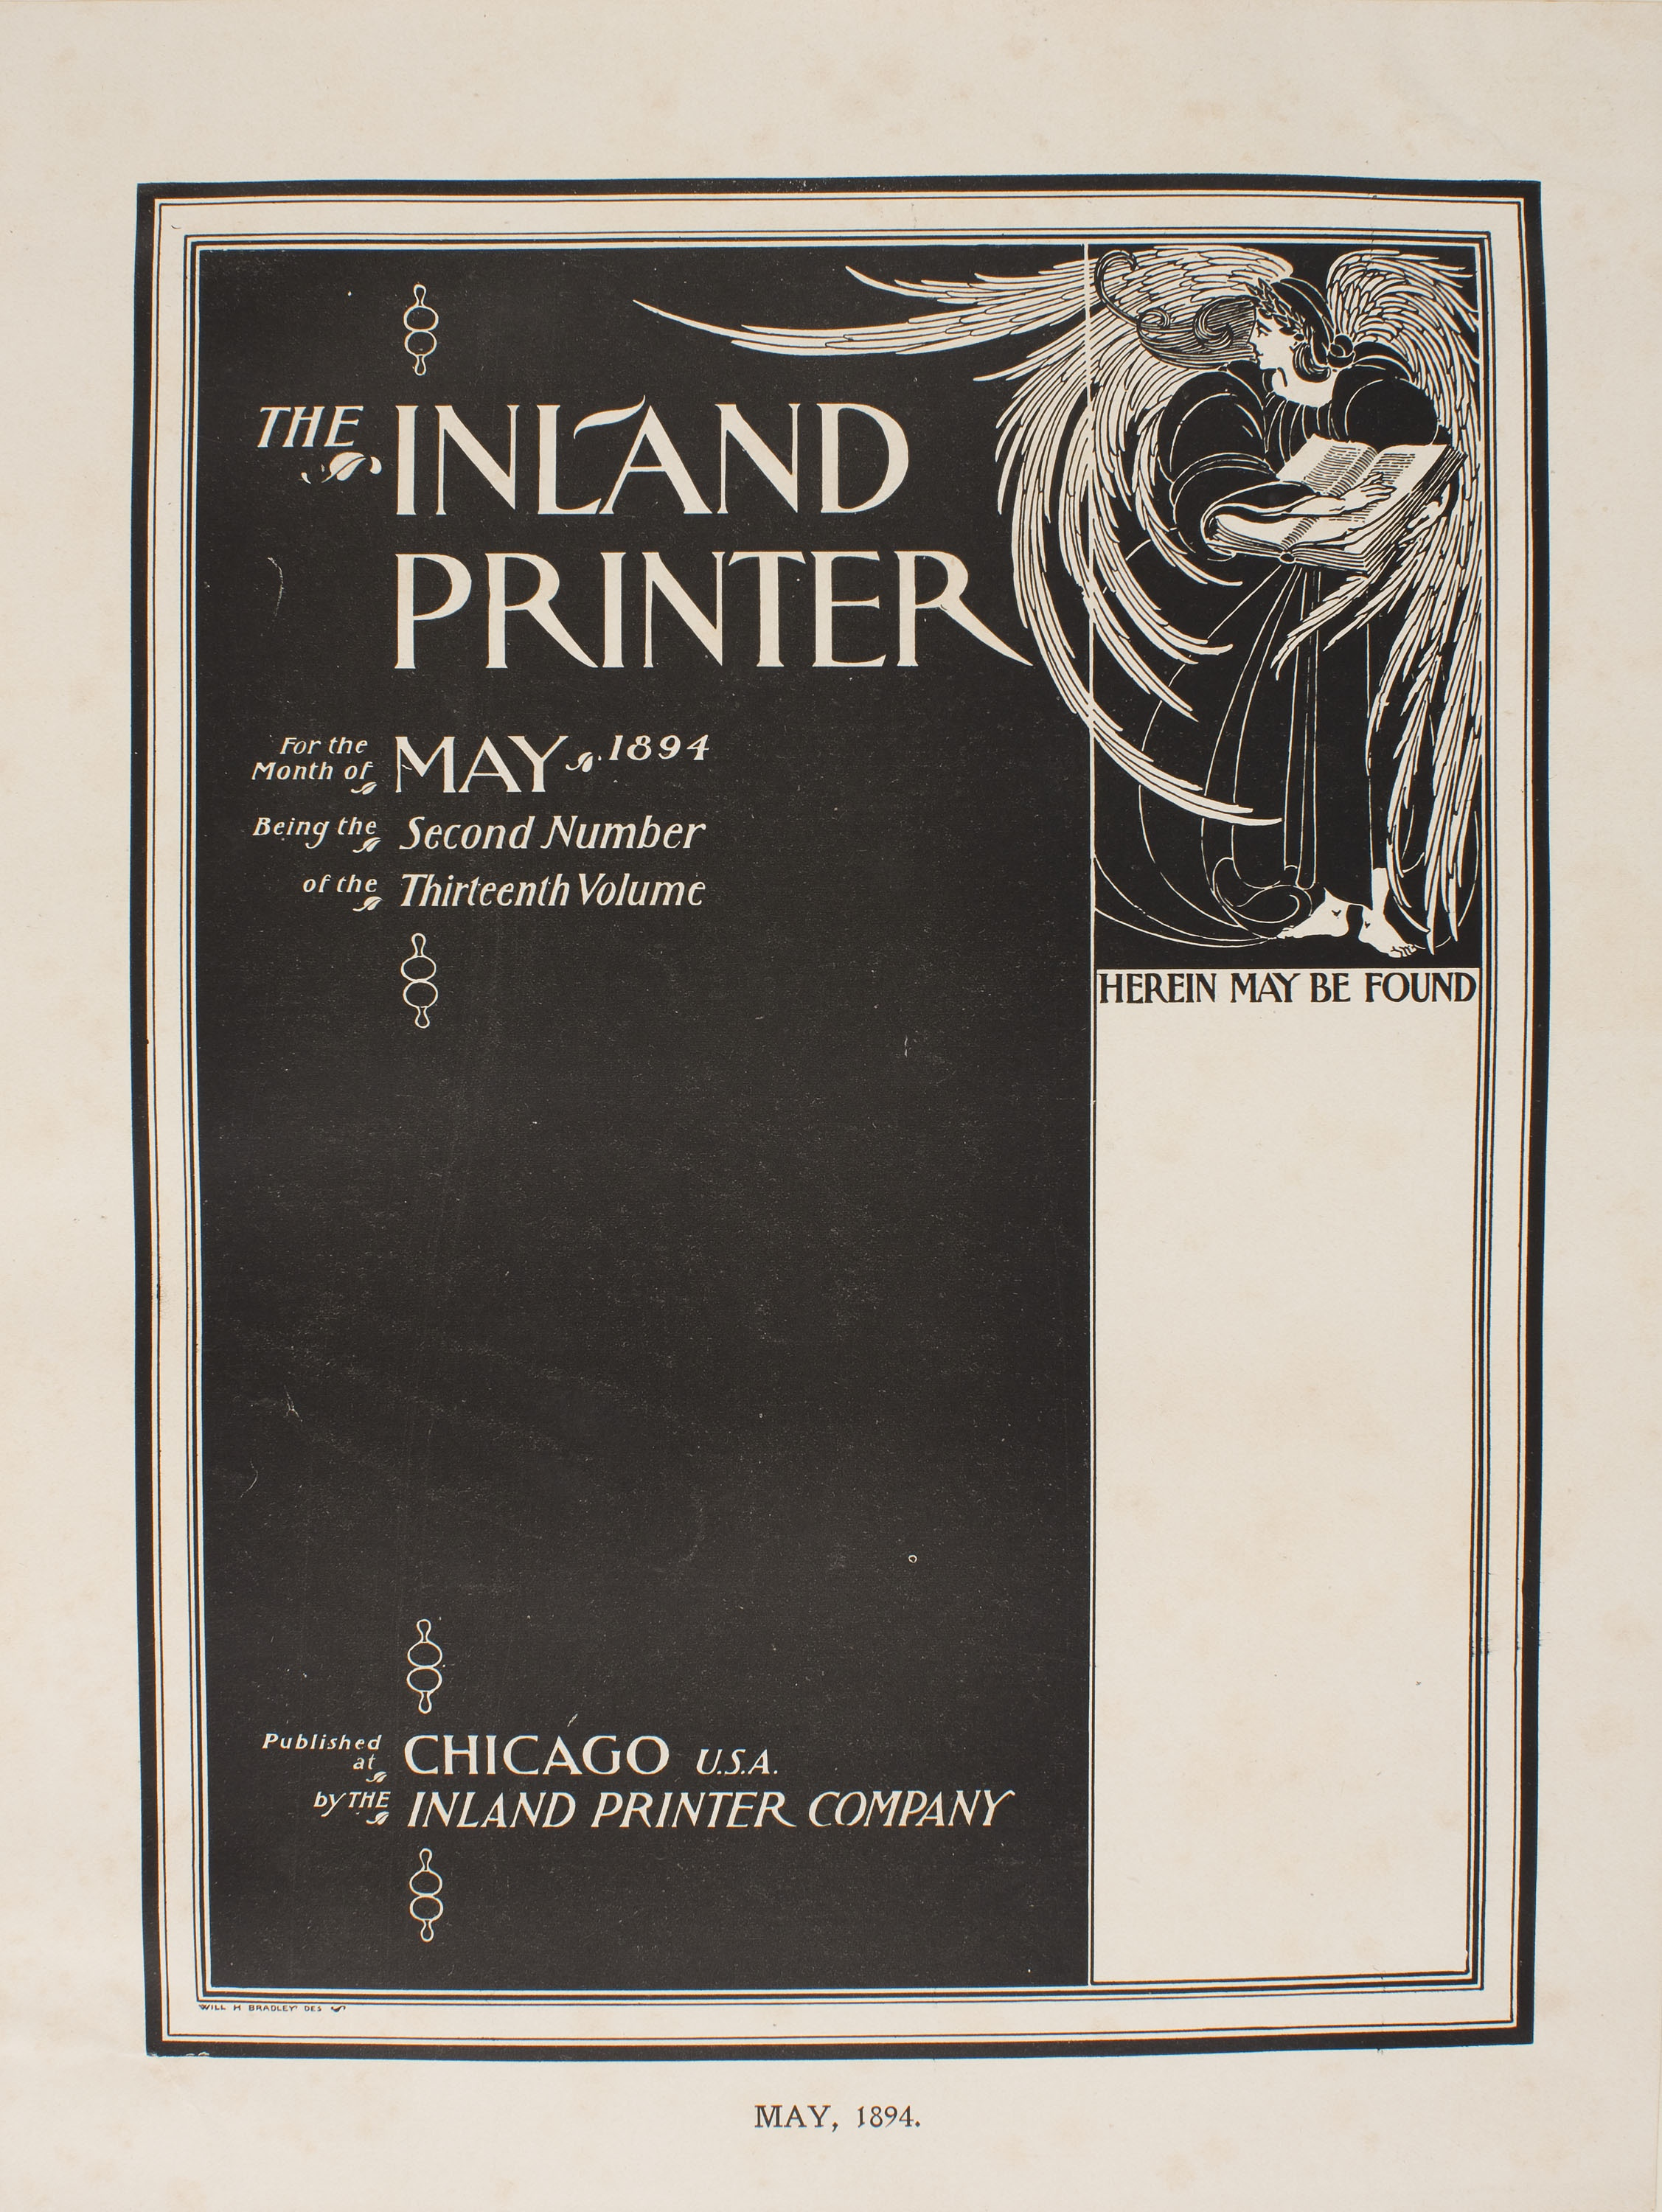 William Henry Bradley - The Inland Printer For the Month of May 1894 - 1894